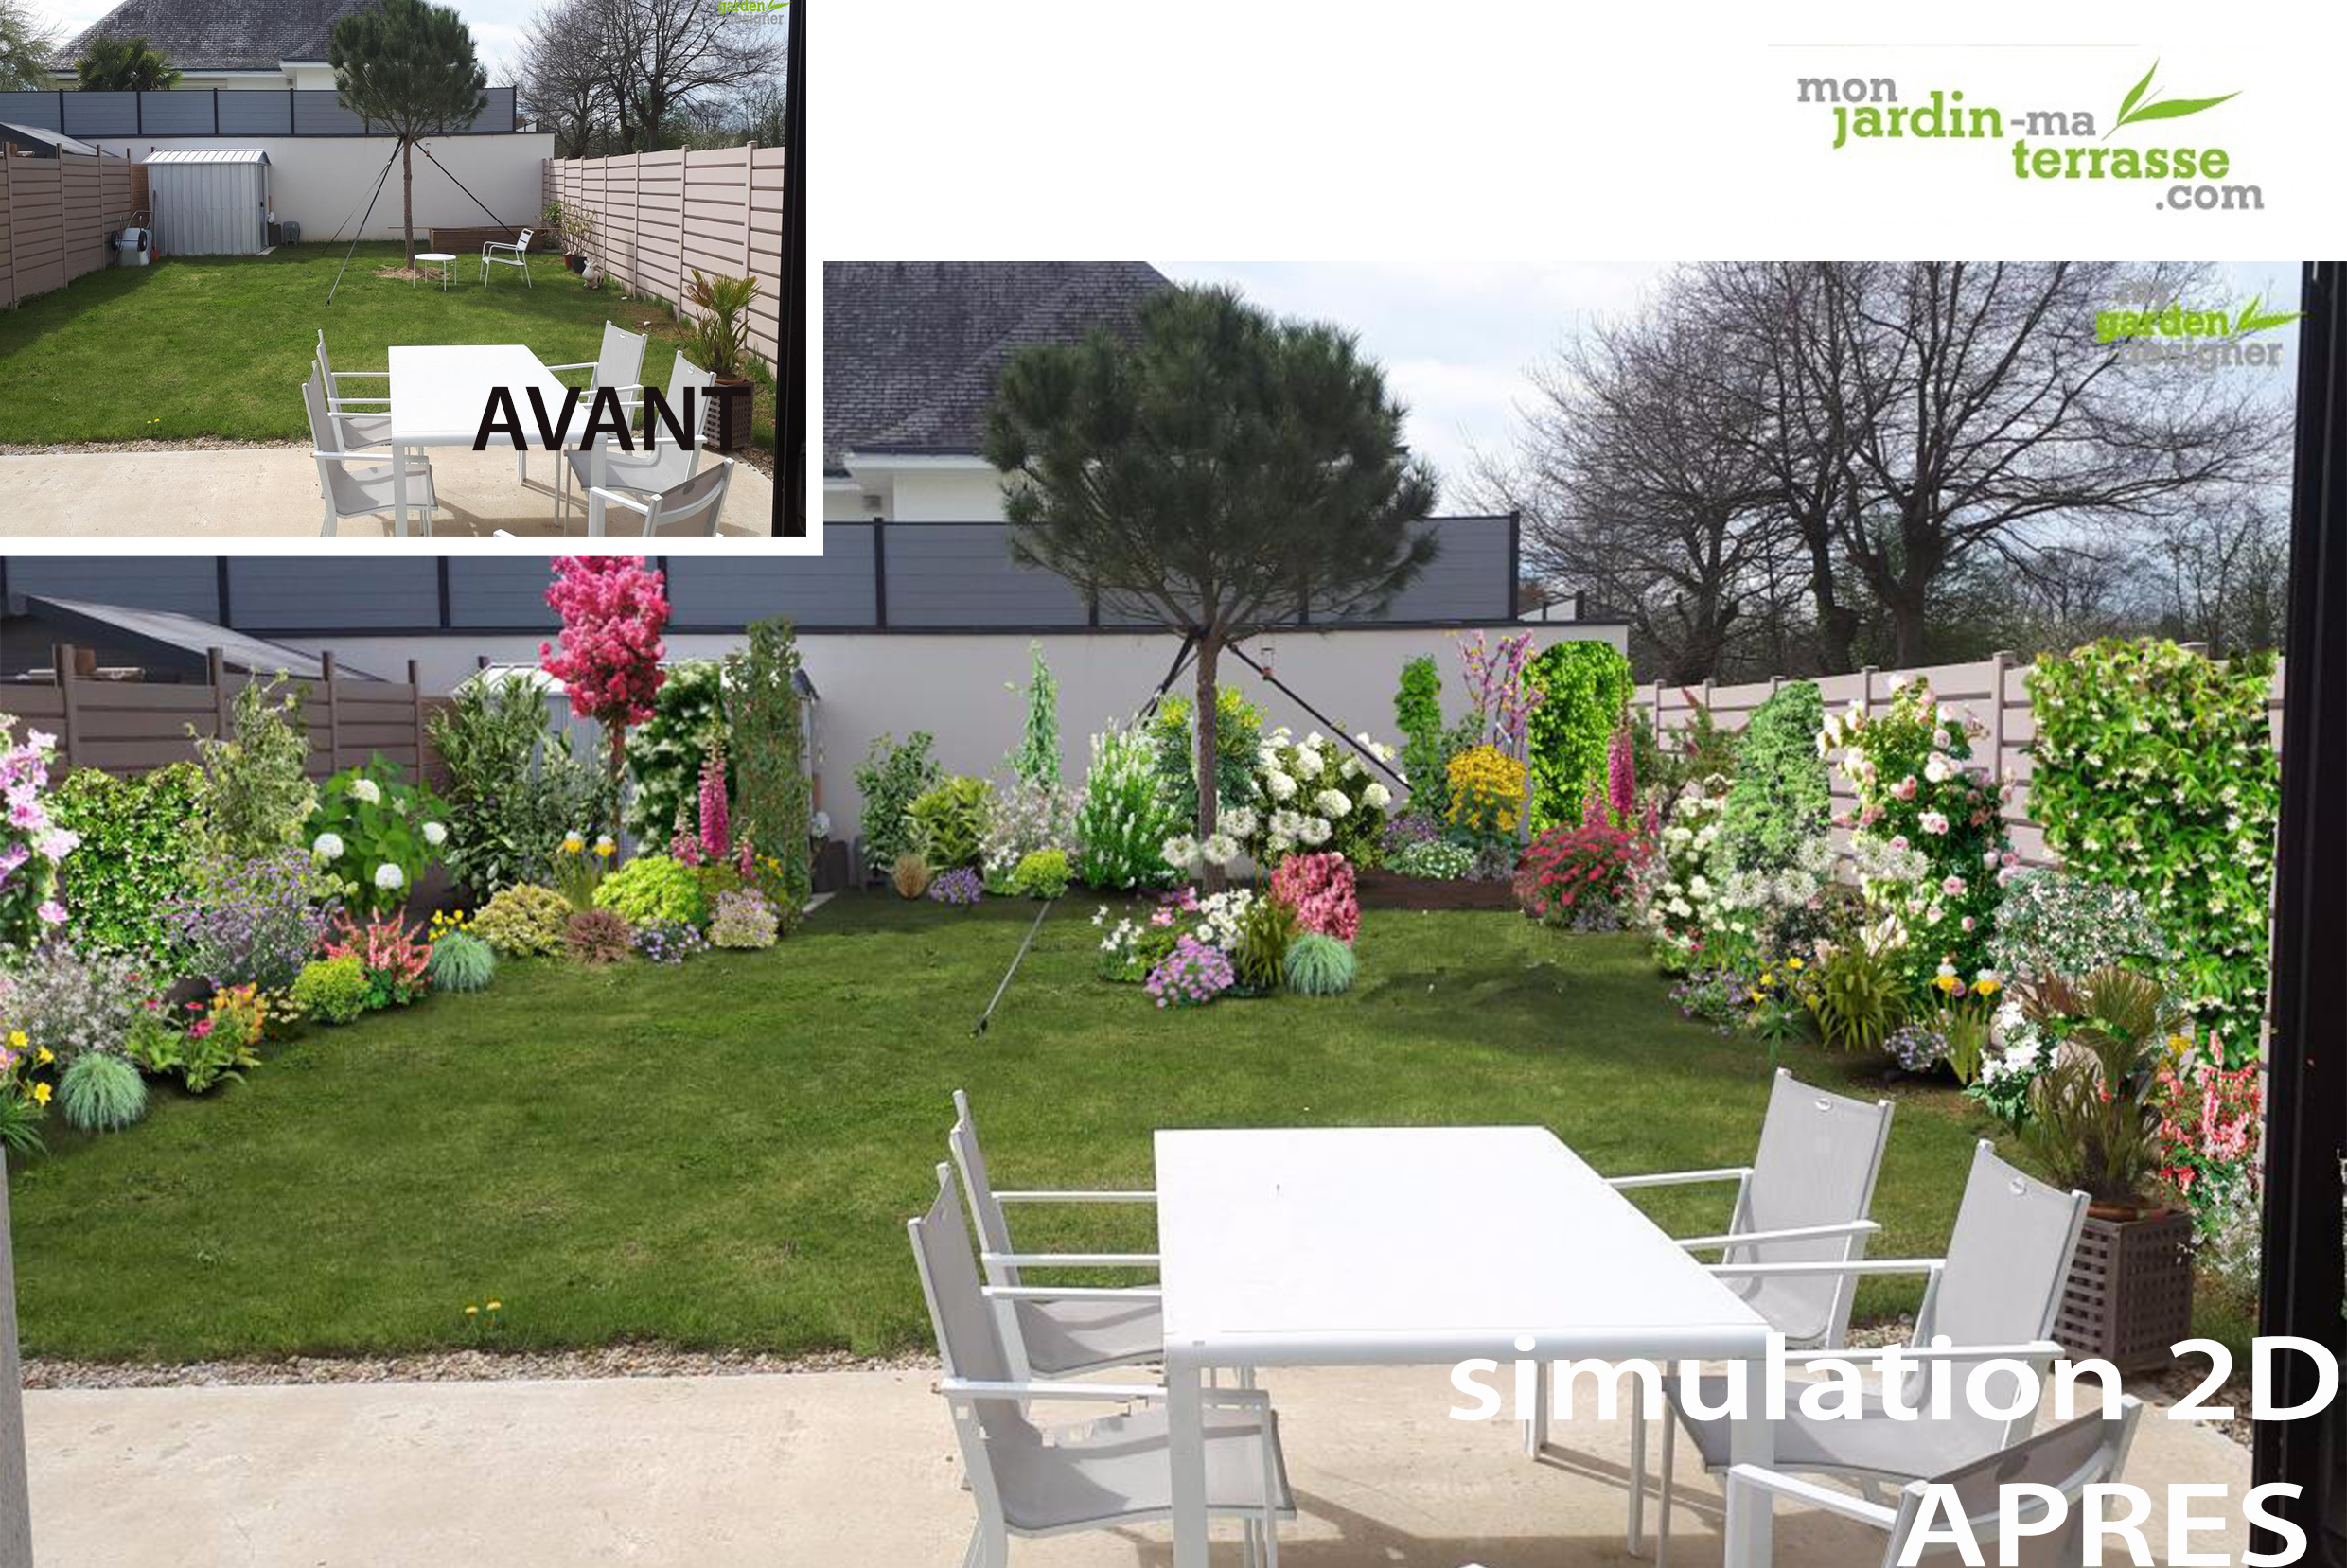 Comment am nager un petit jardin rectangulaire monjardin for Amenagement petit terrain